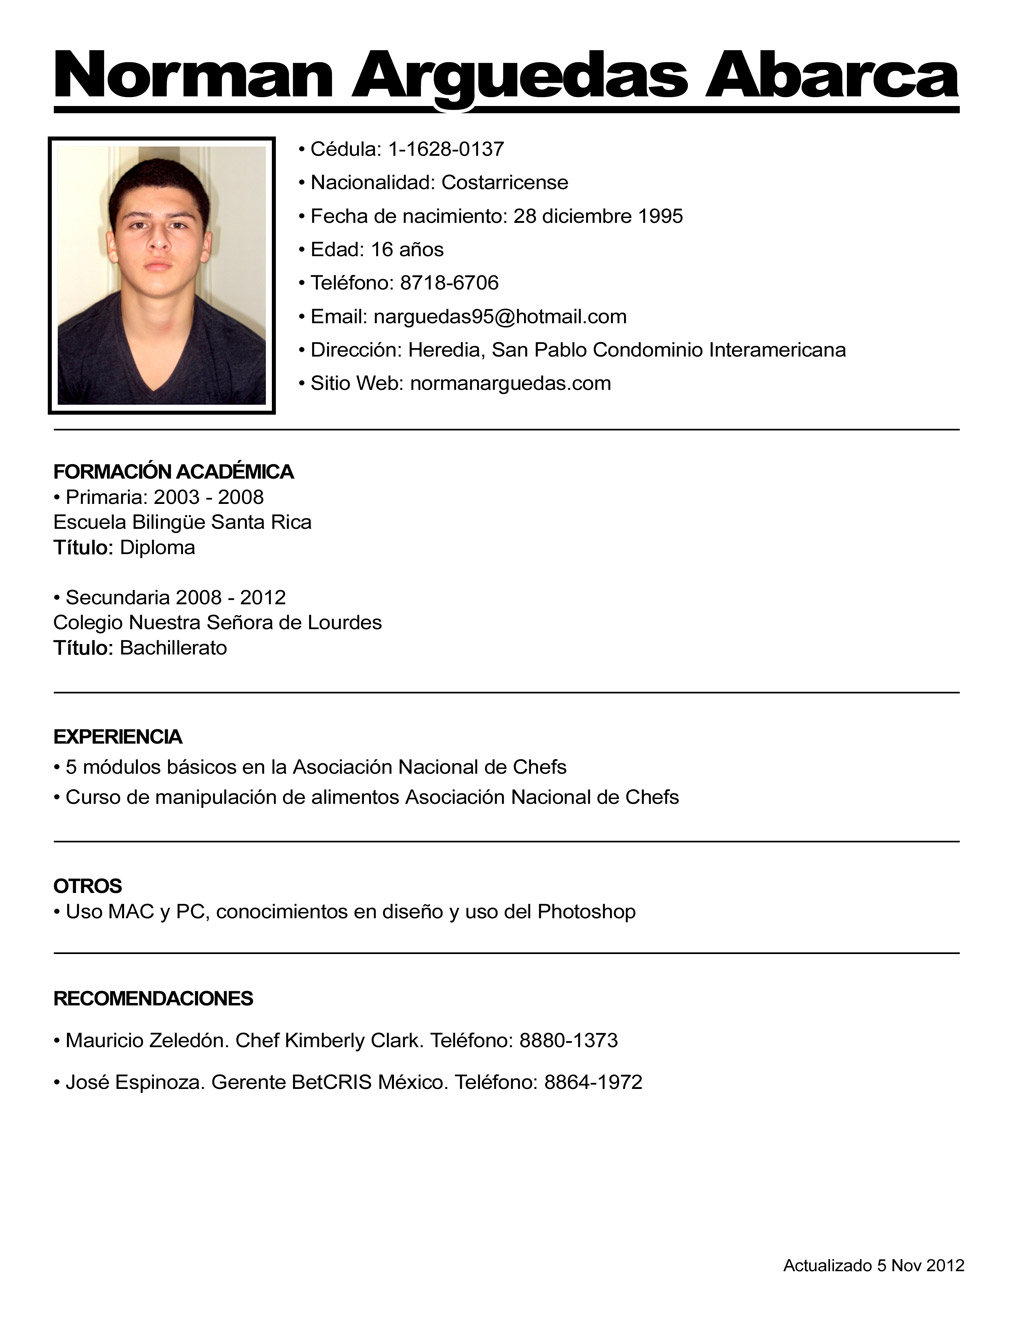 Ejemplo O Modelo De Curriculum Vitae  Modelo De. Cover Letter Sample For Resume Internship. Generic Cover Letter High School Student. Cover Letter Examples Monster. Letter Of Intent Sample Legal. Cover Letter Template Receptionist. Resume Format Simple. Resume Builder Software Free Download For Mac. Resume Format Word